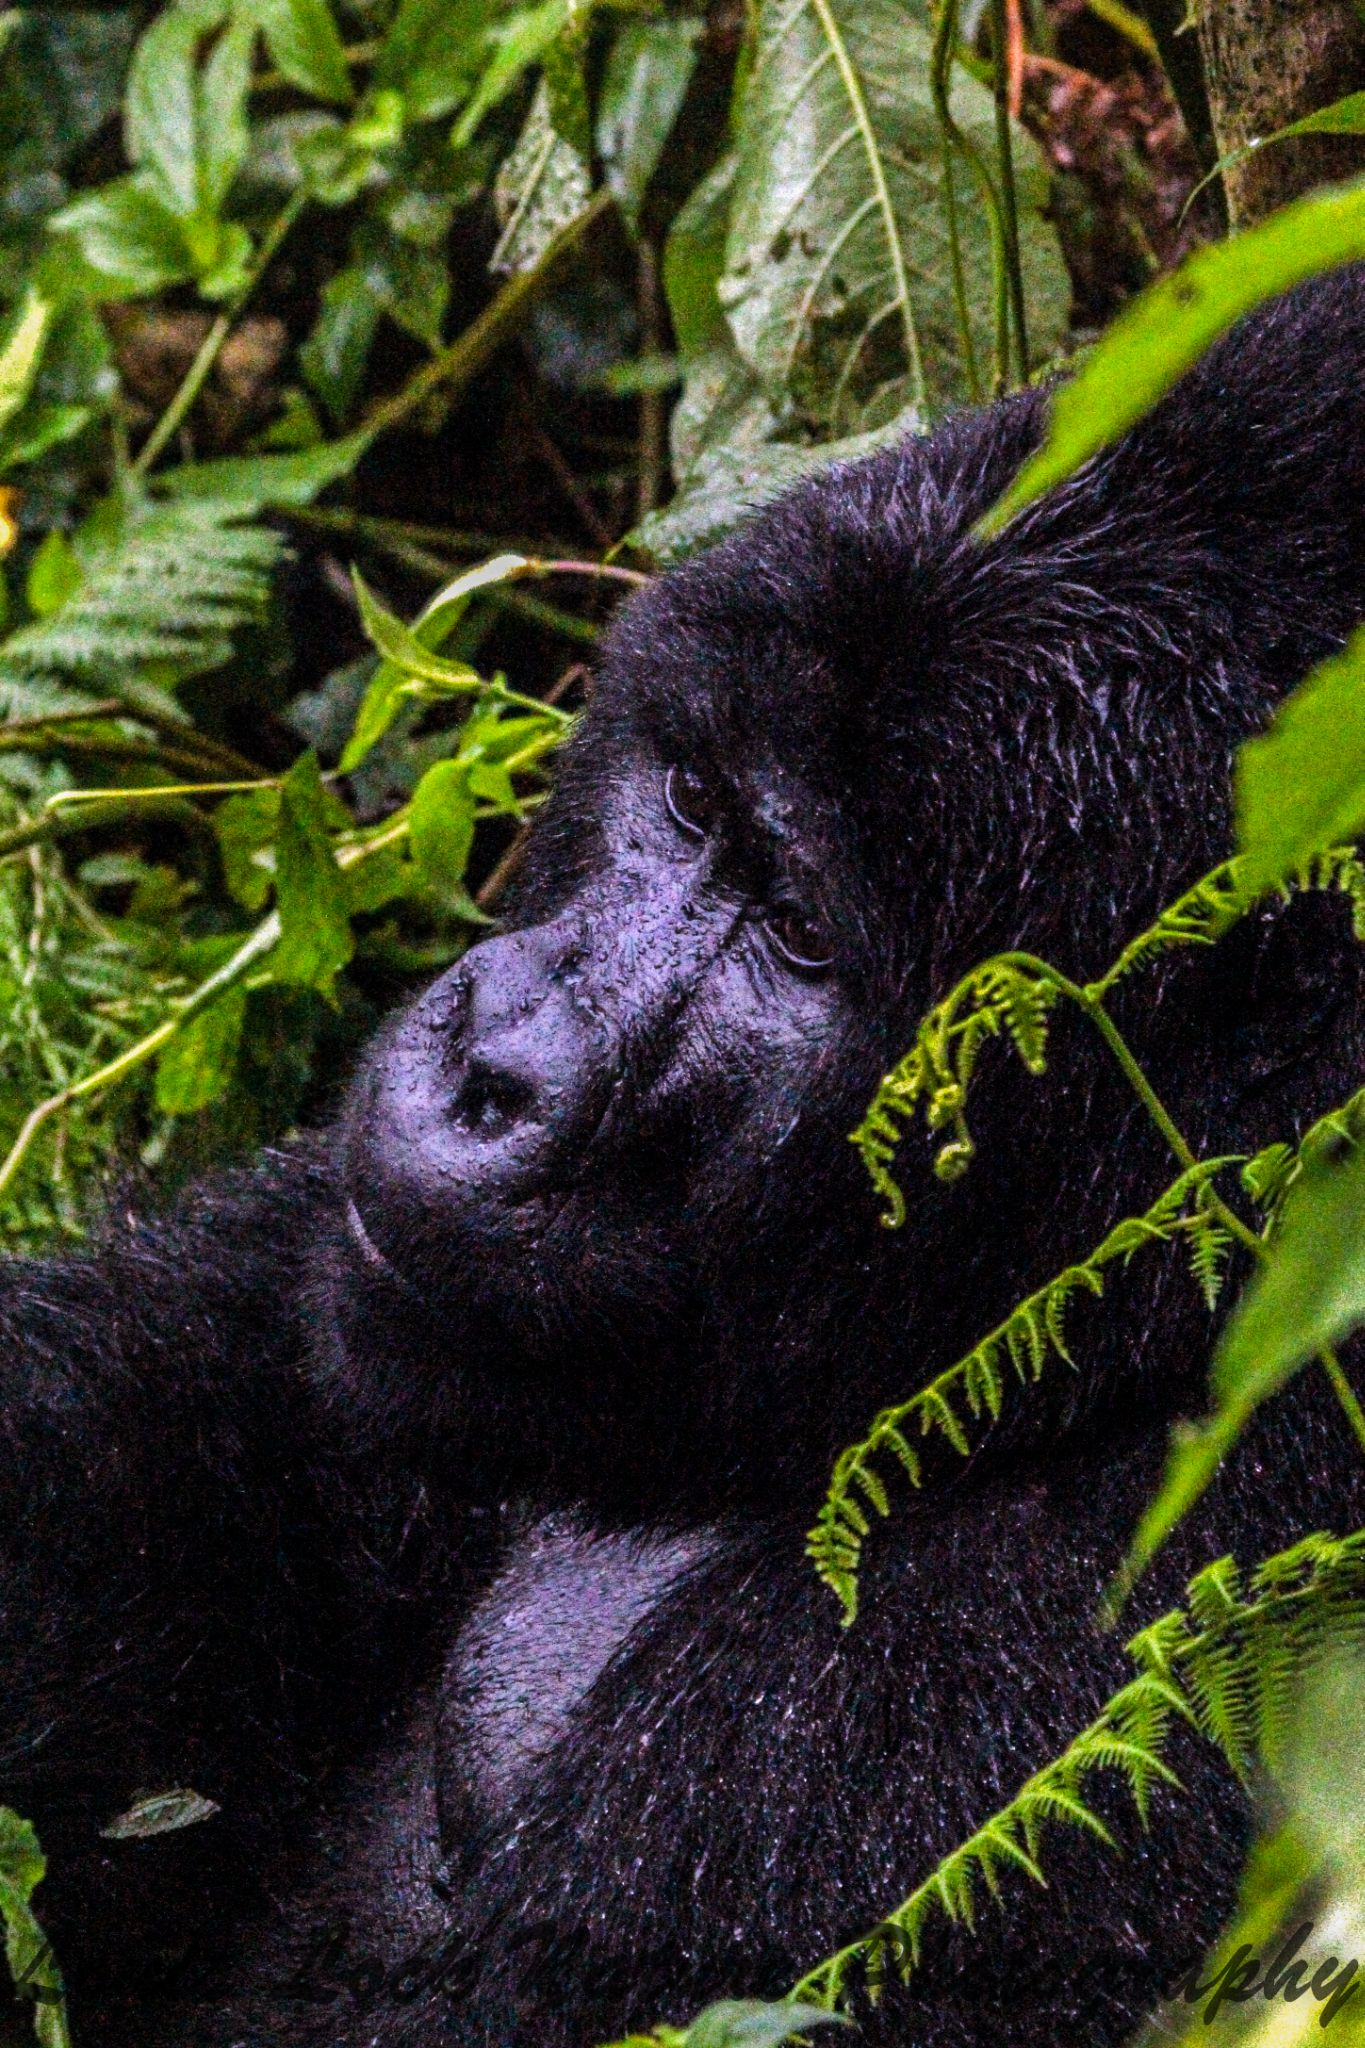 Gorilla in the forest by Louis Lock